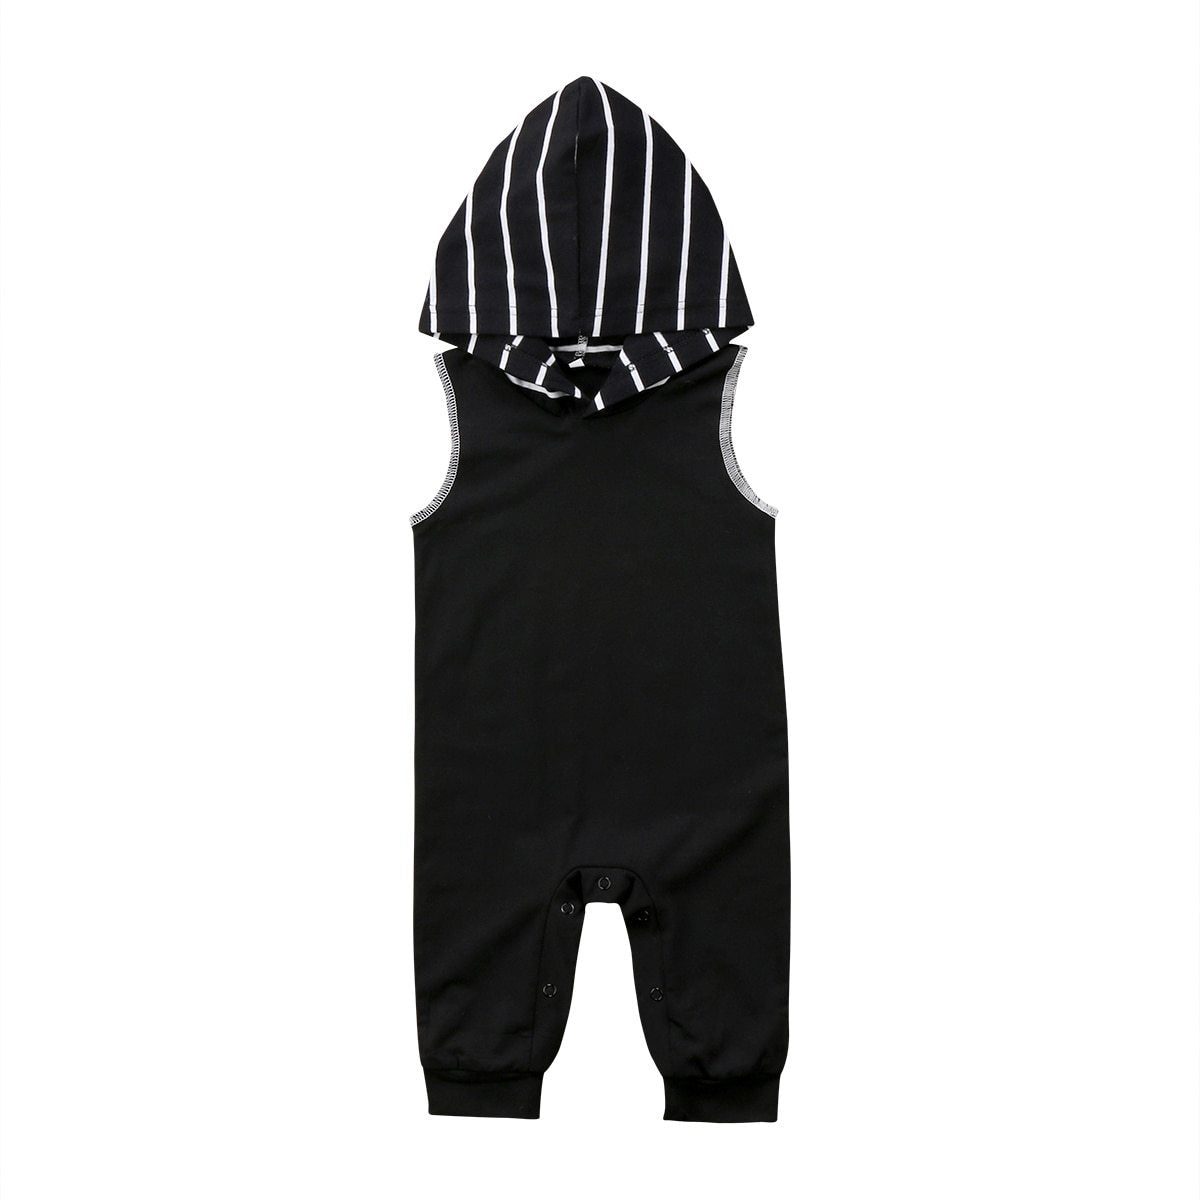 Infant Newborn Rompers Baby Boys Summer hooded Romper Jumpsuit Cotton Tanks Clothesdresskily-dresskily